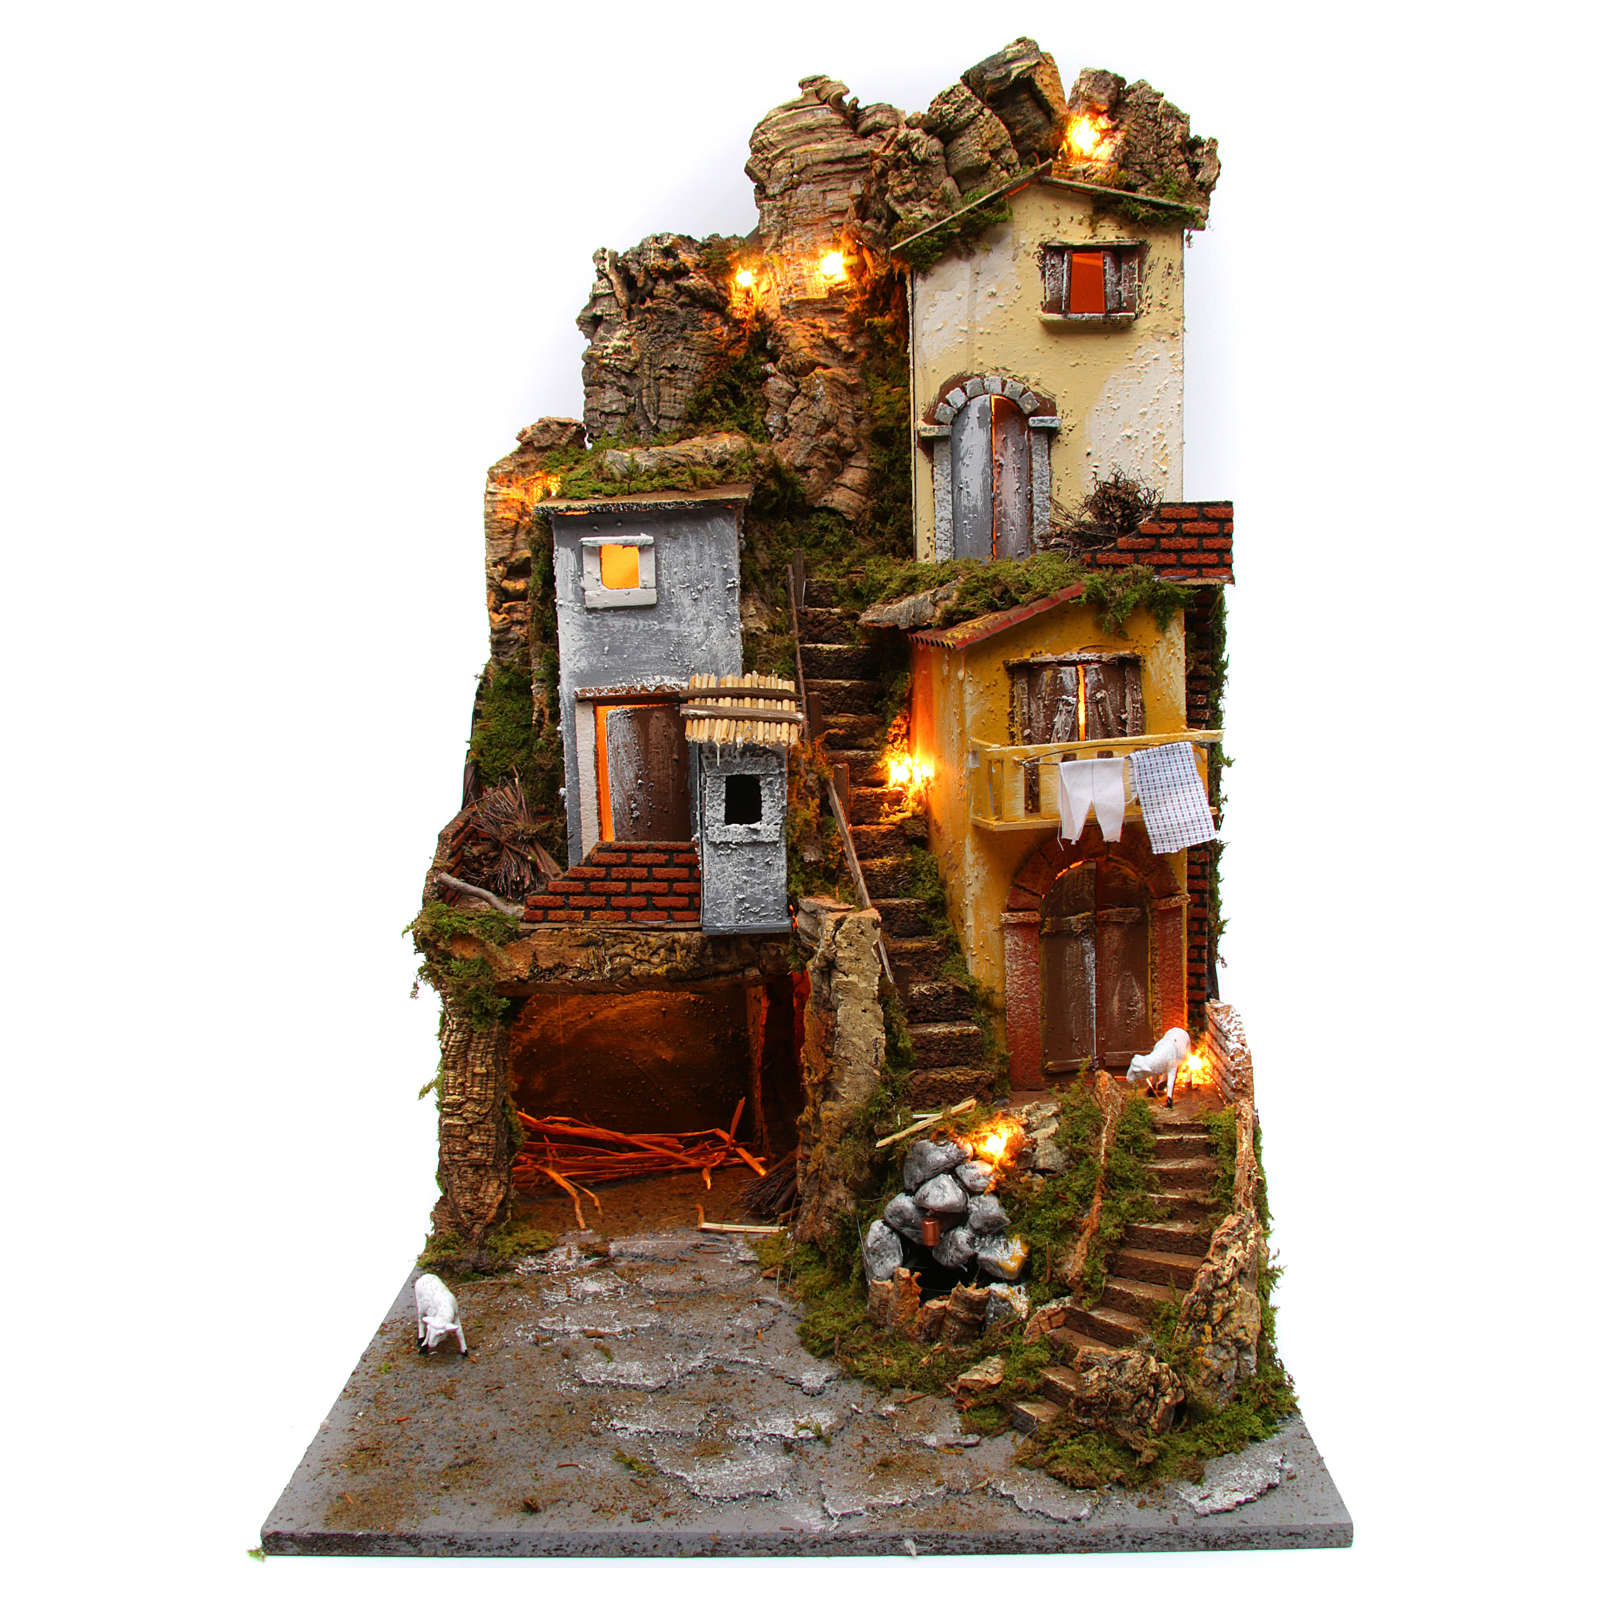 Nativity Rustic Hill Village Lights Grotto Fountain with Pump 45x50x70 cm 4